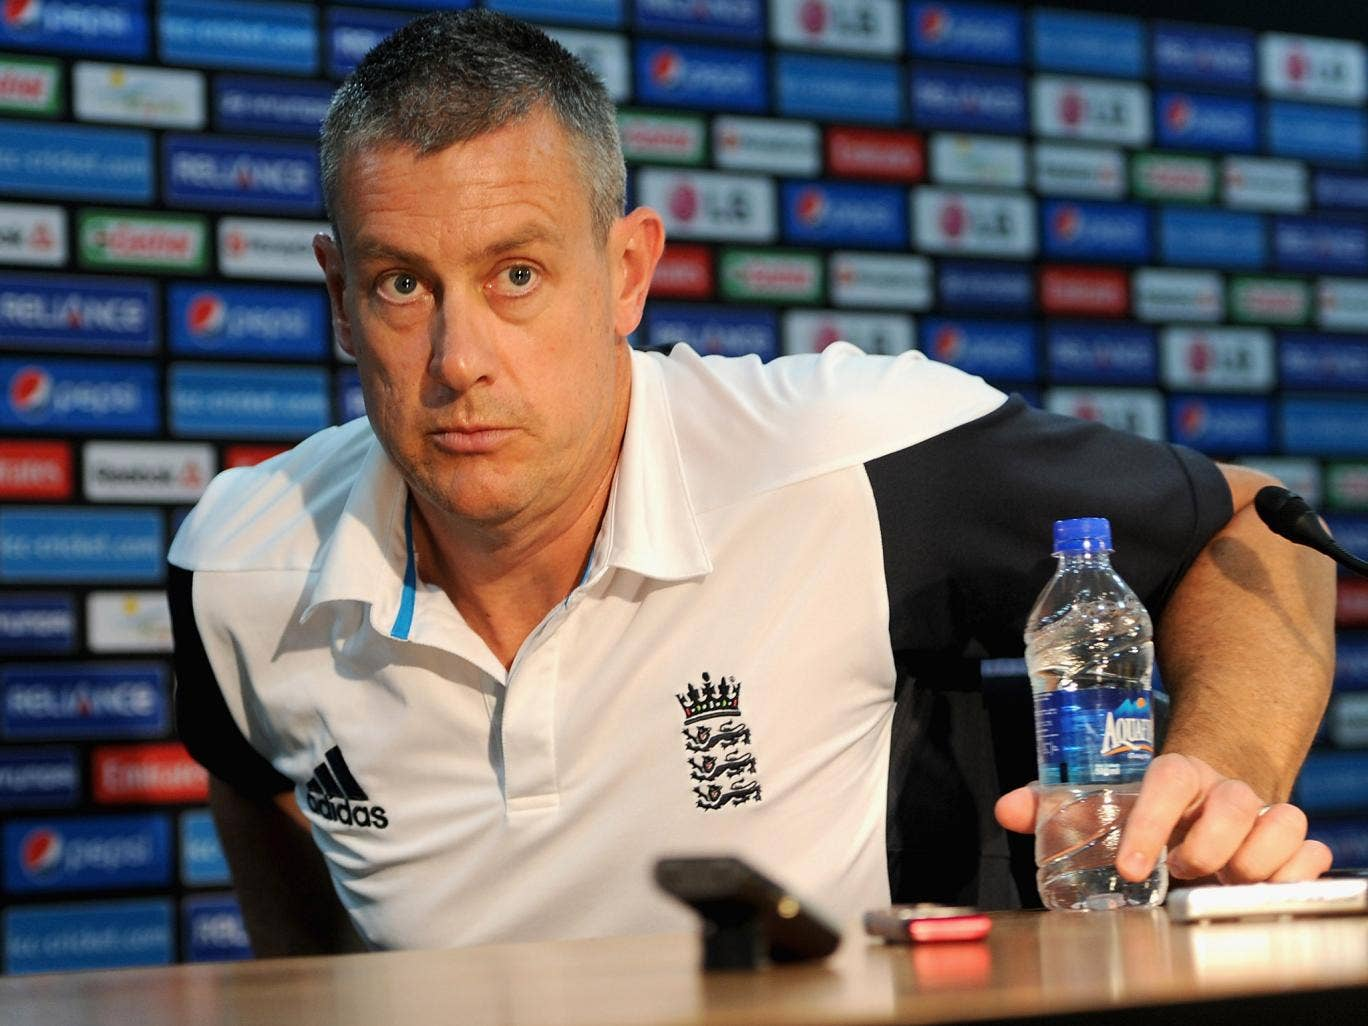 Ashley Giles may have to seek alternative employment